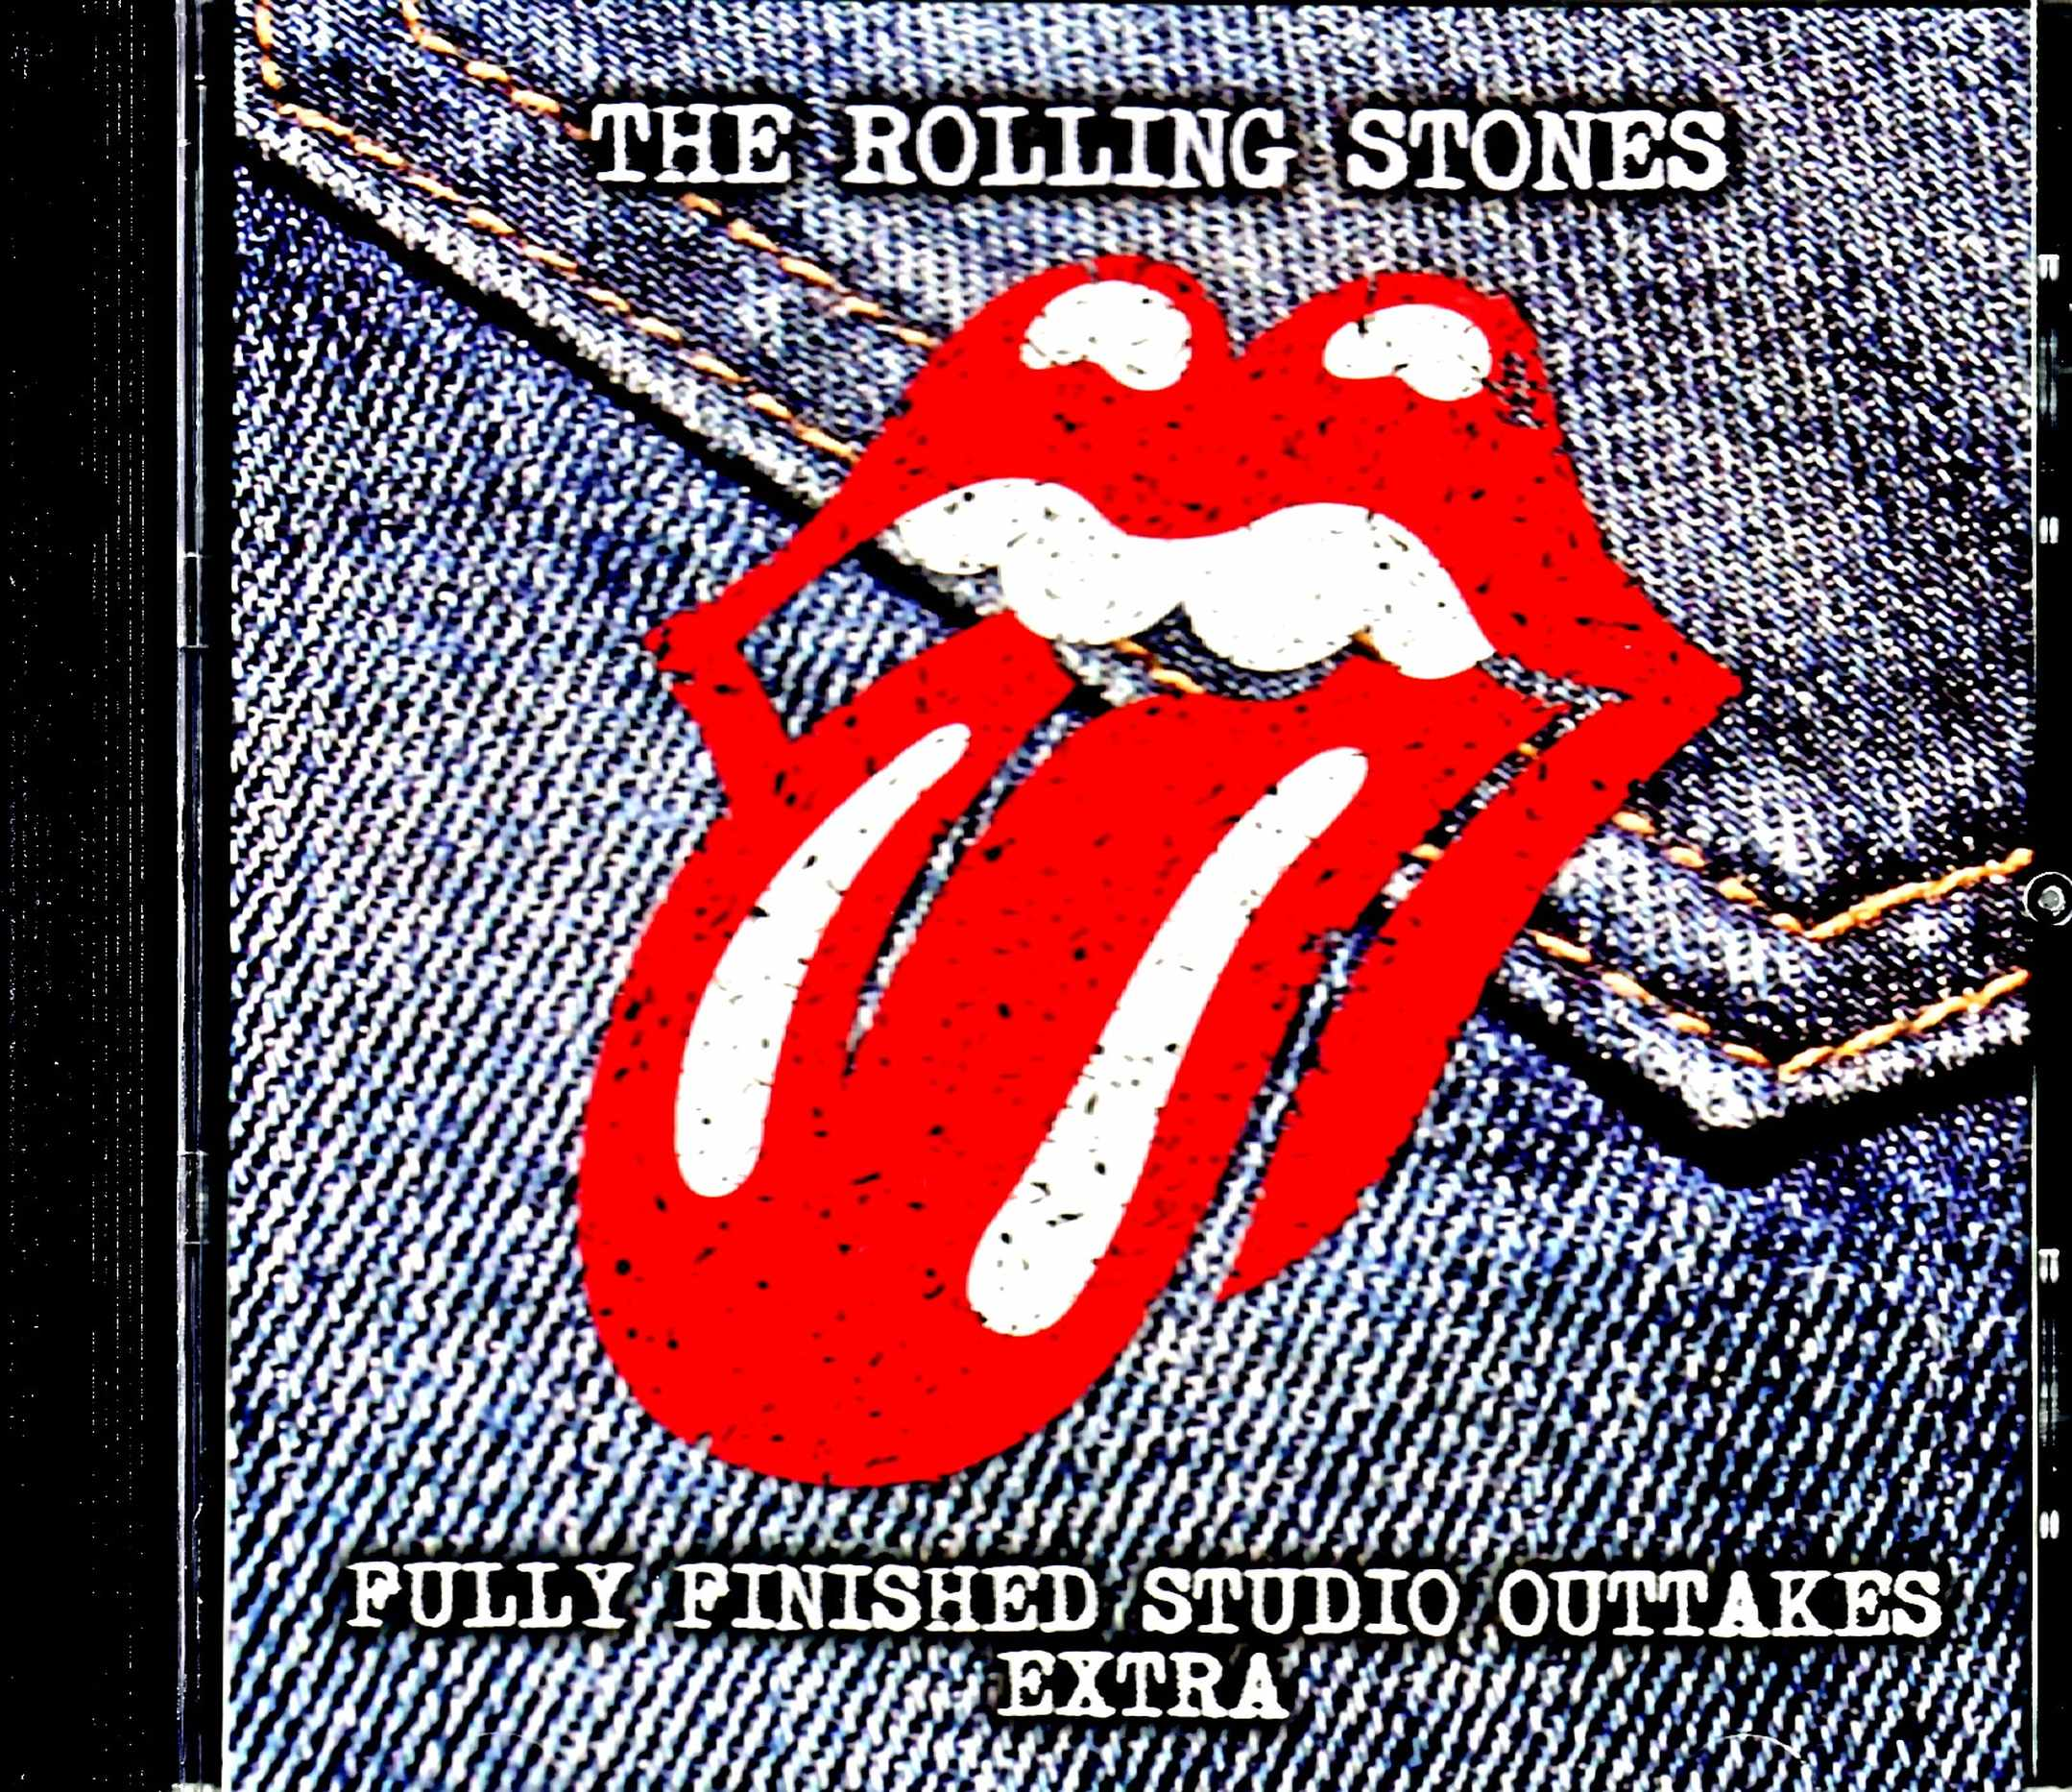 Rolling Stones ローリング・ストーンズ/Fully Finished Studio Outtakes Extra